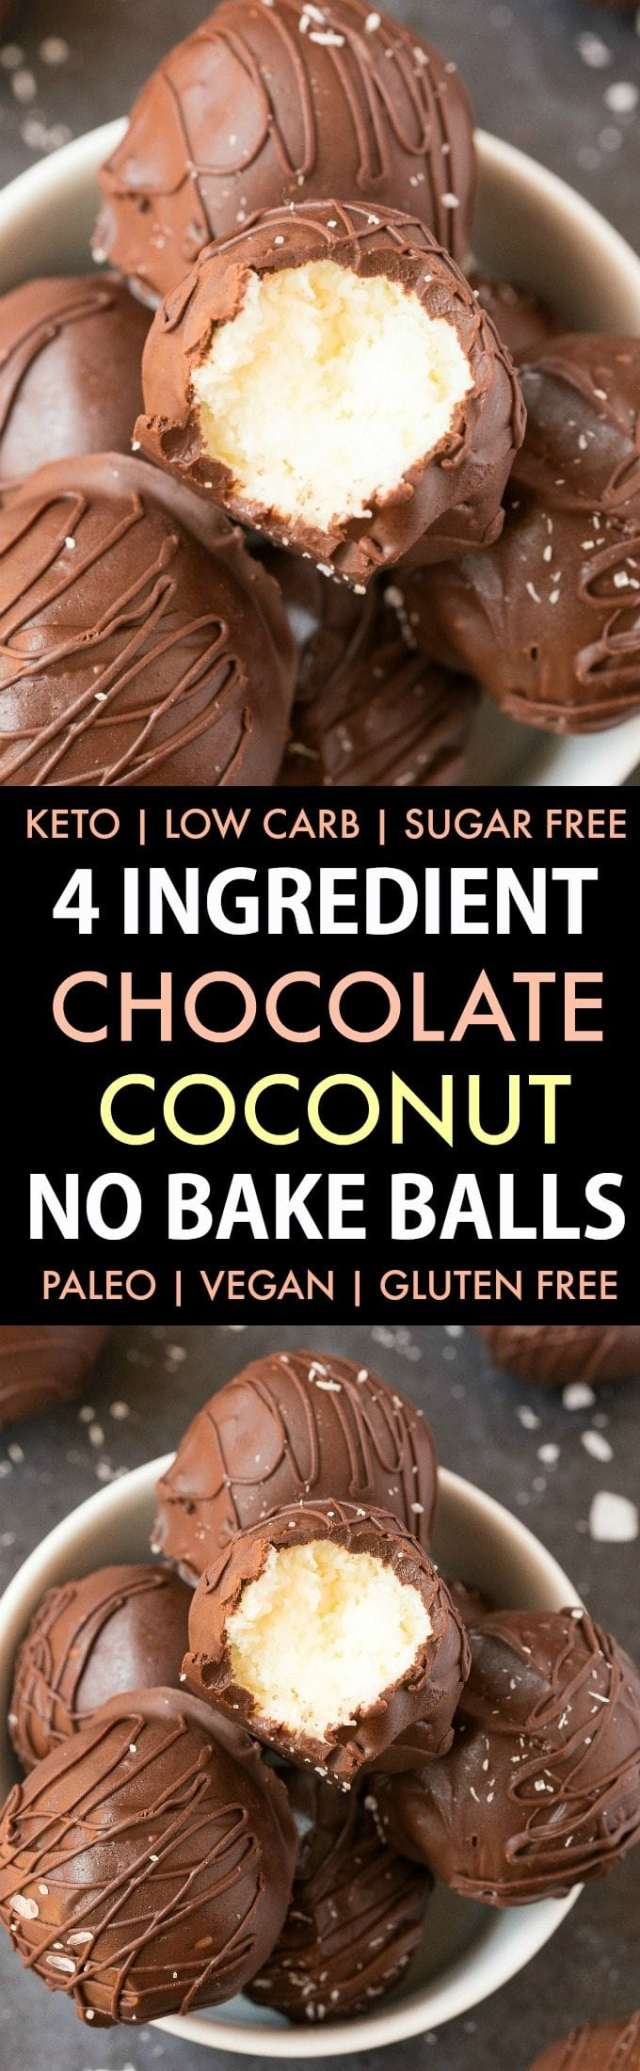 4-Ingredient Paleo Vegan Chocolate Coconut No Bake Balls in a collage